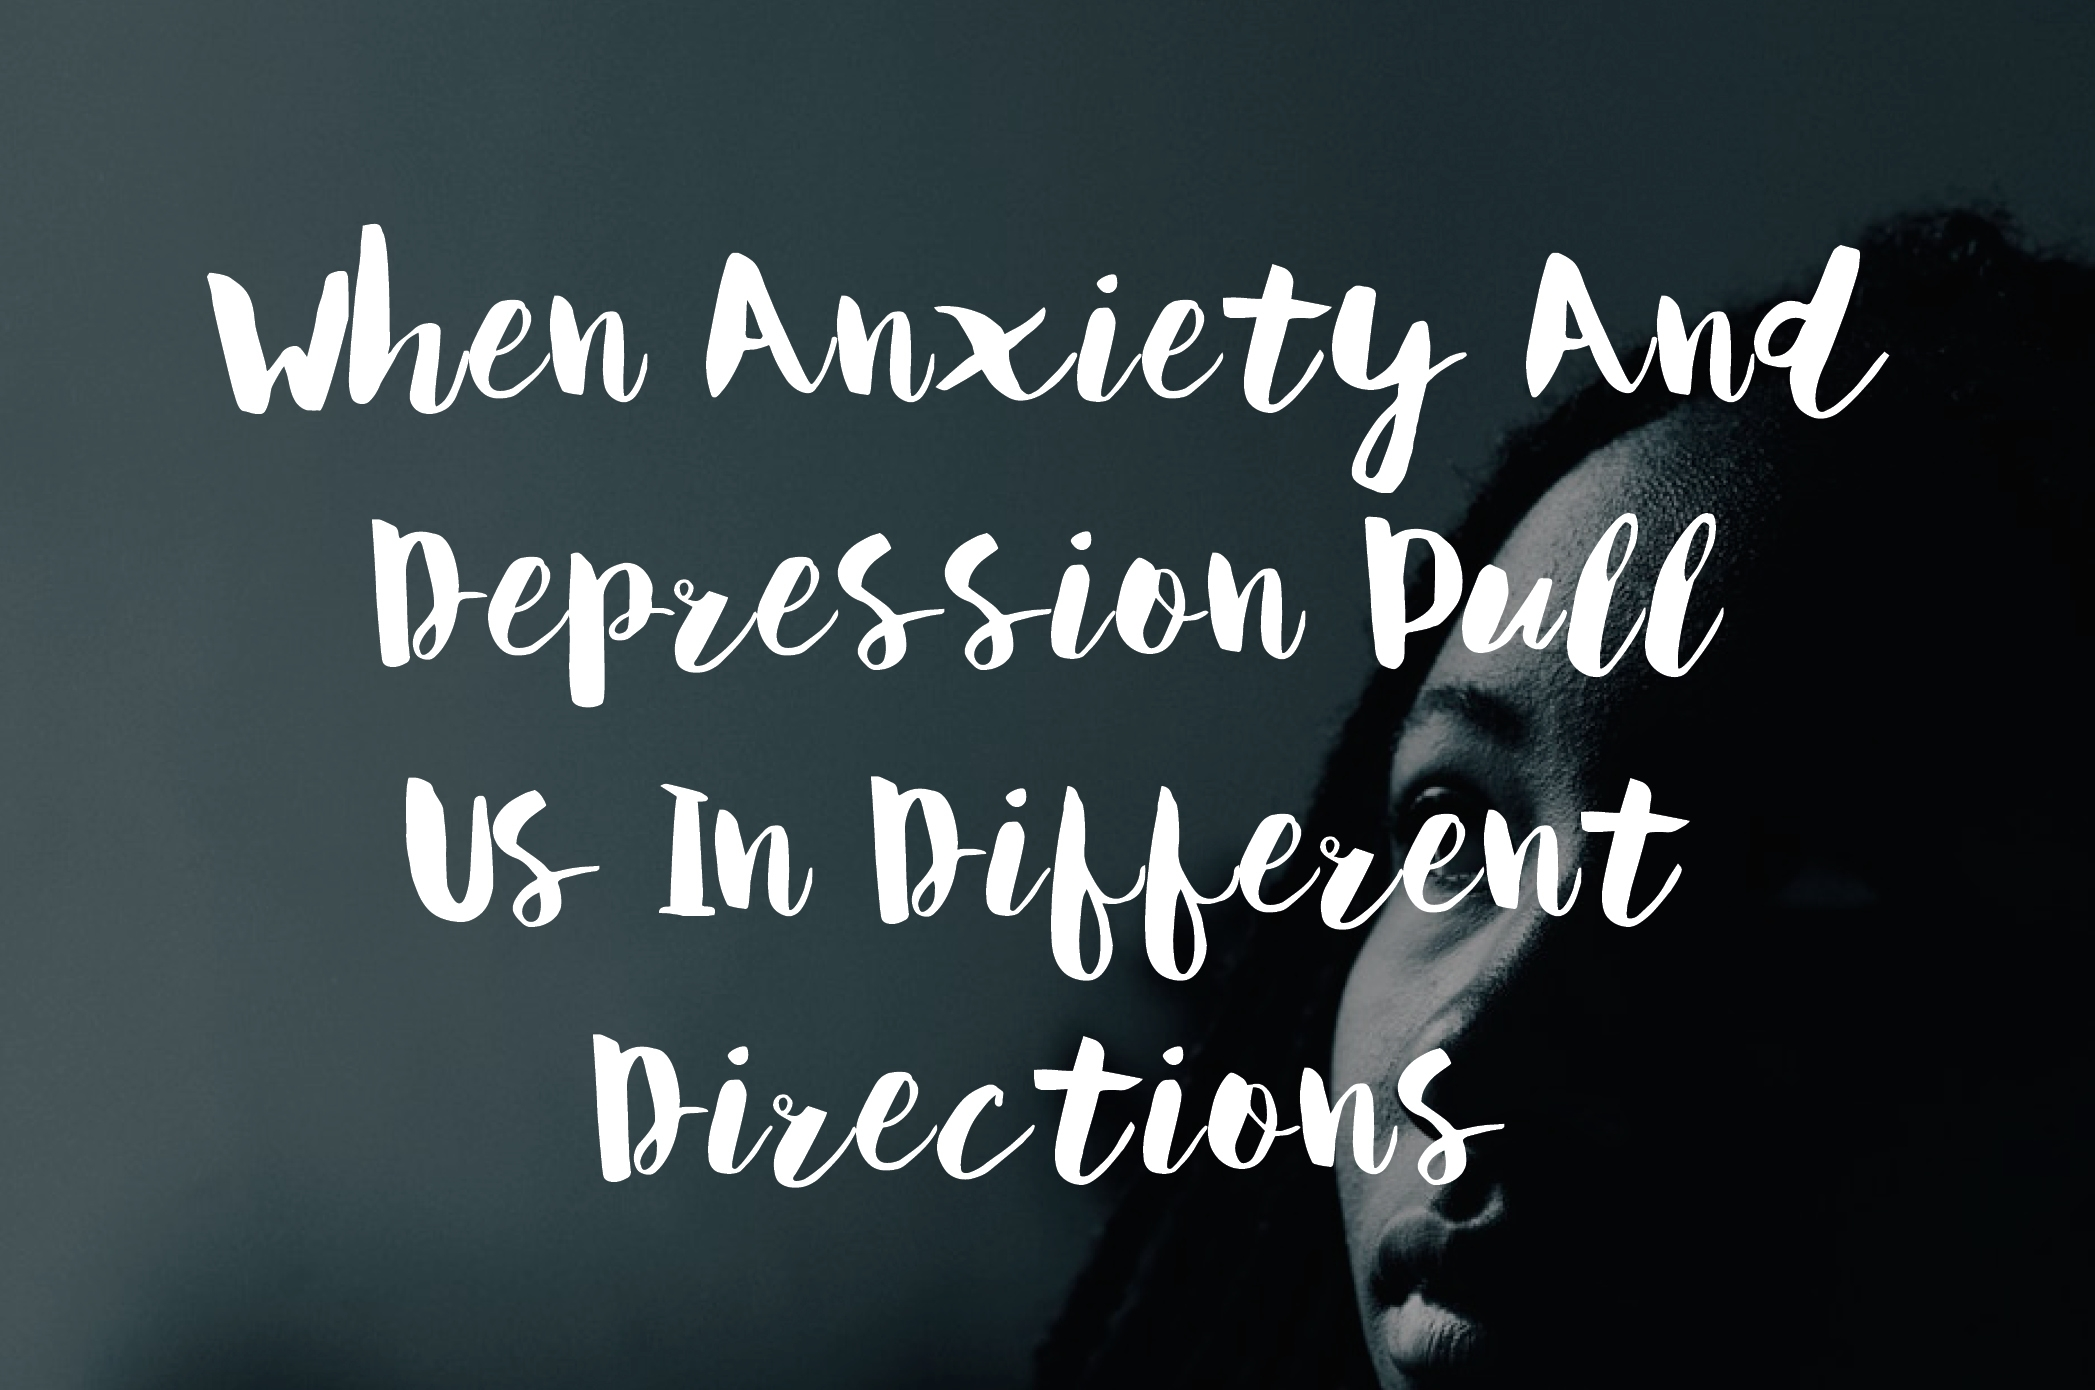 When Anxiety And Depression Pull Us In Different Directions